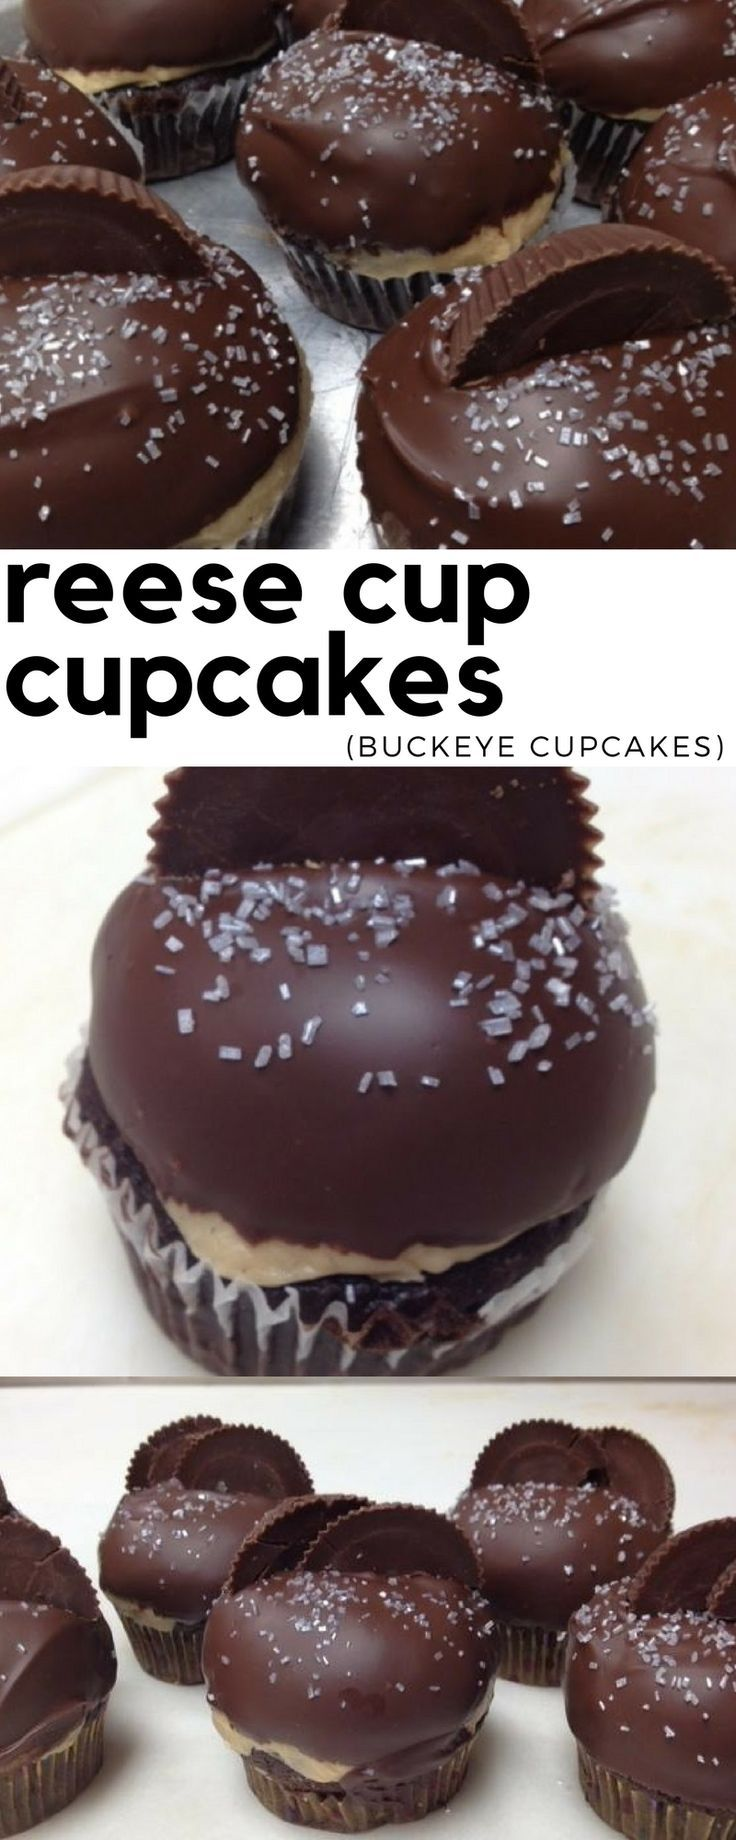 Homemade reese cup cupcakes recipe any peanut butter fan is sure to love!